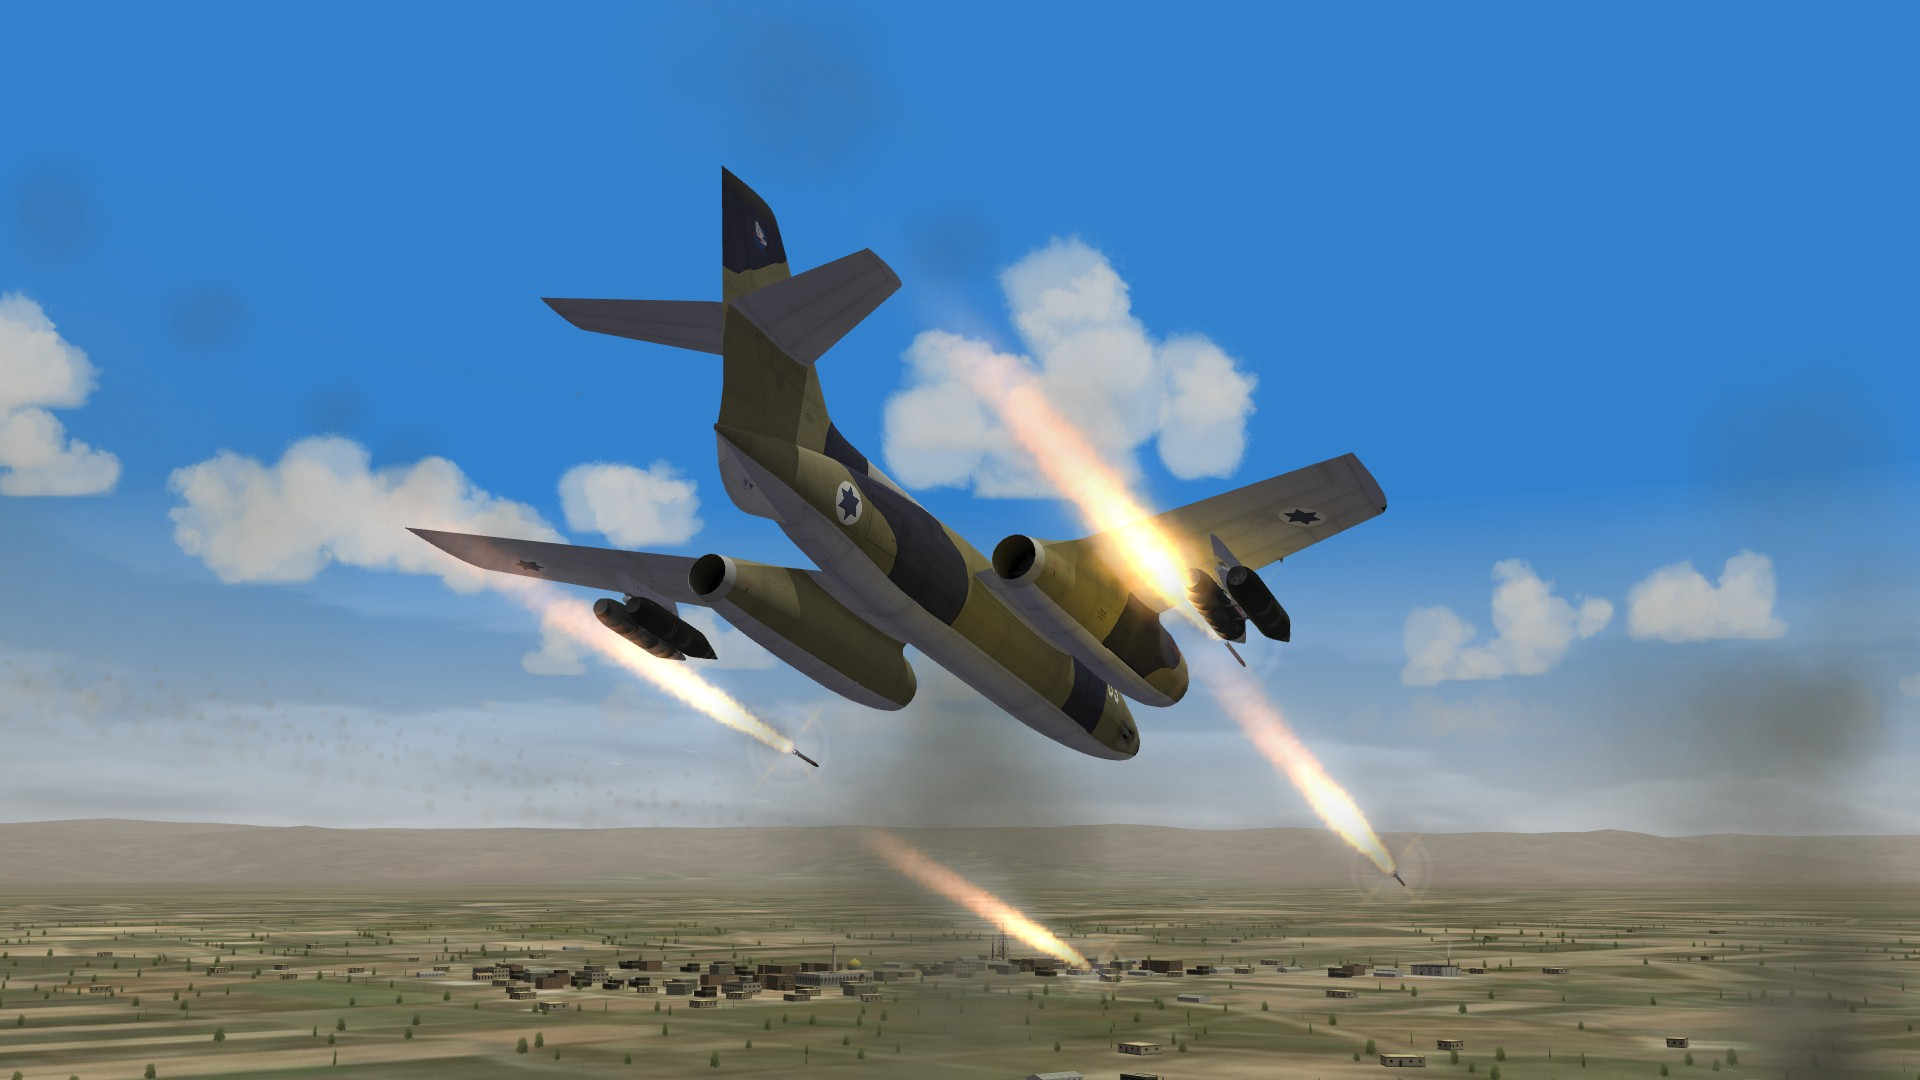 Vautour IIA strafing with rockets six days war